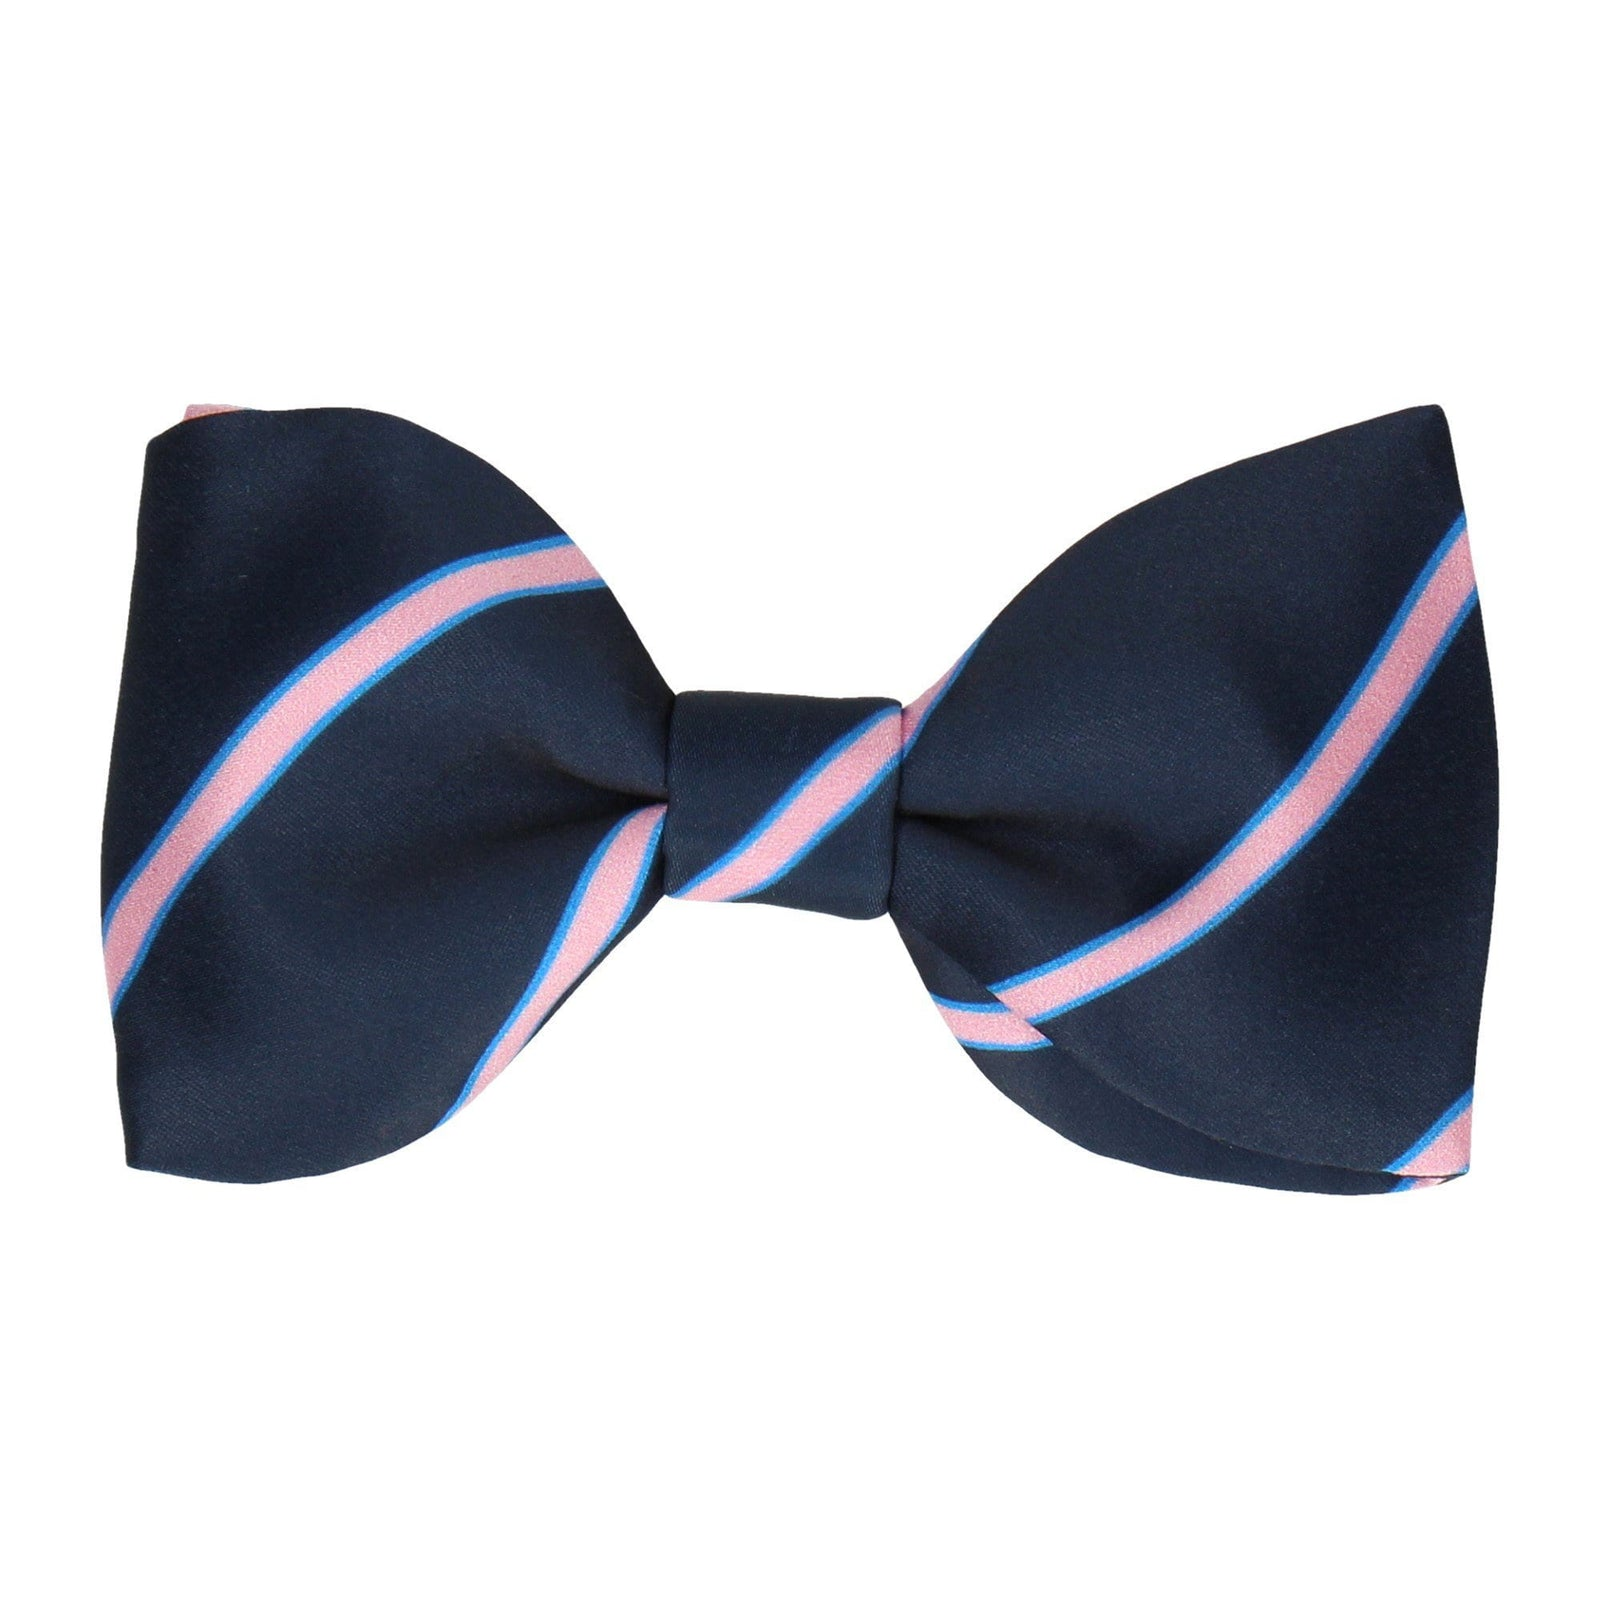 Navy & Pink Regimental Stripe Bow Tie